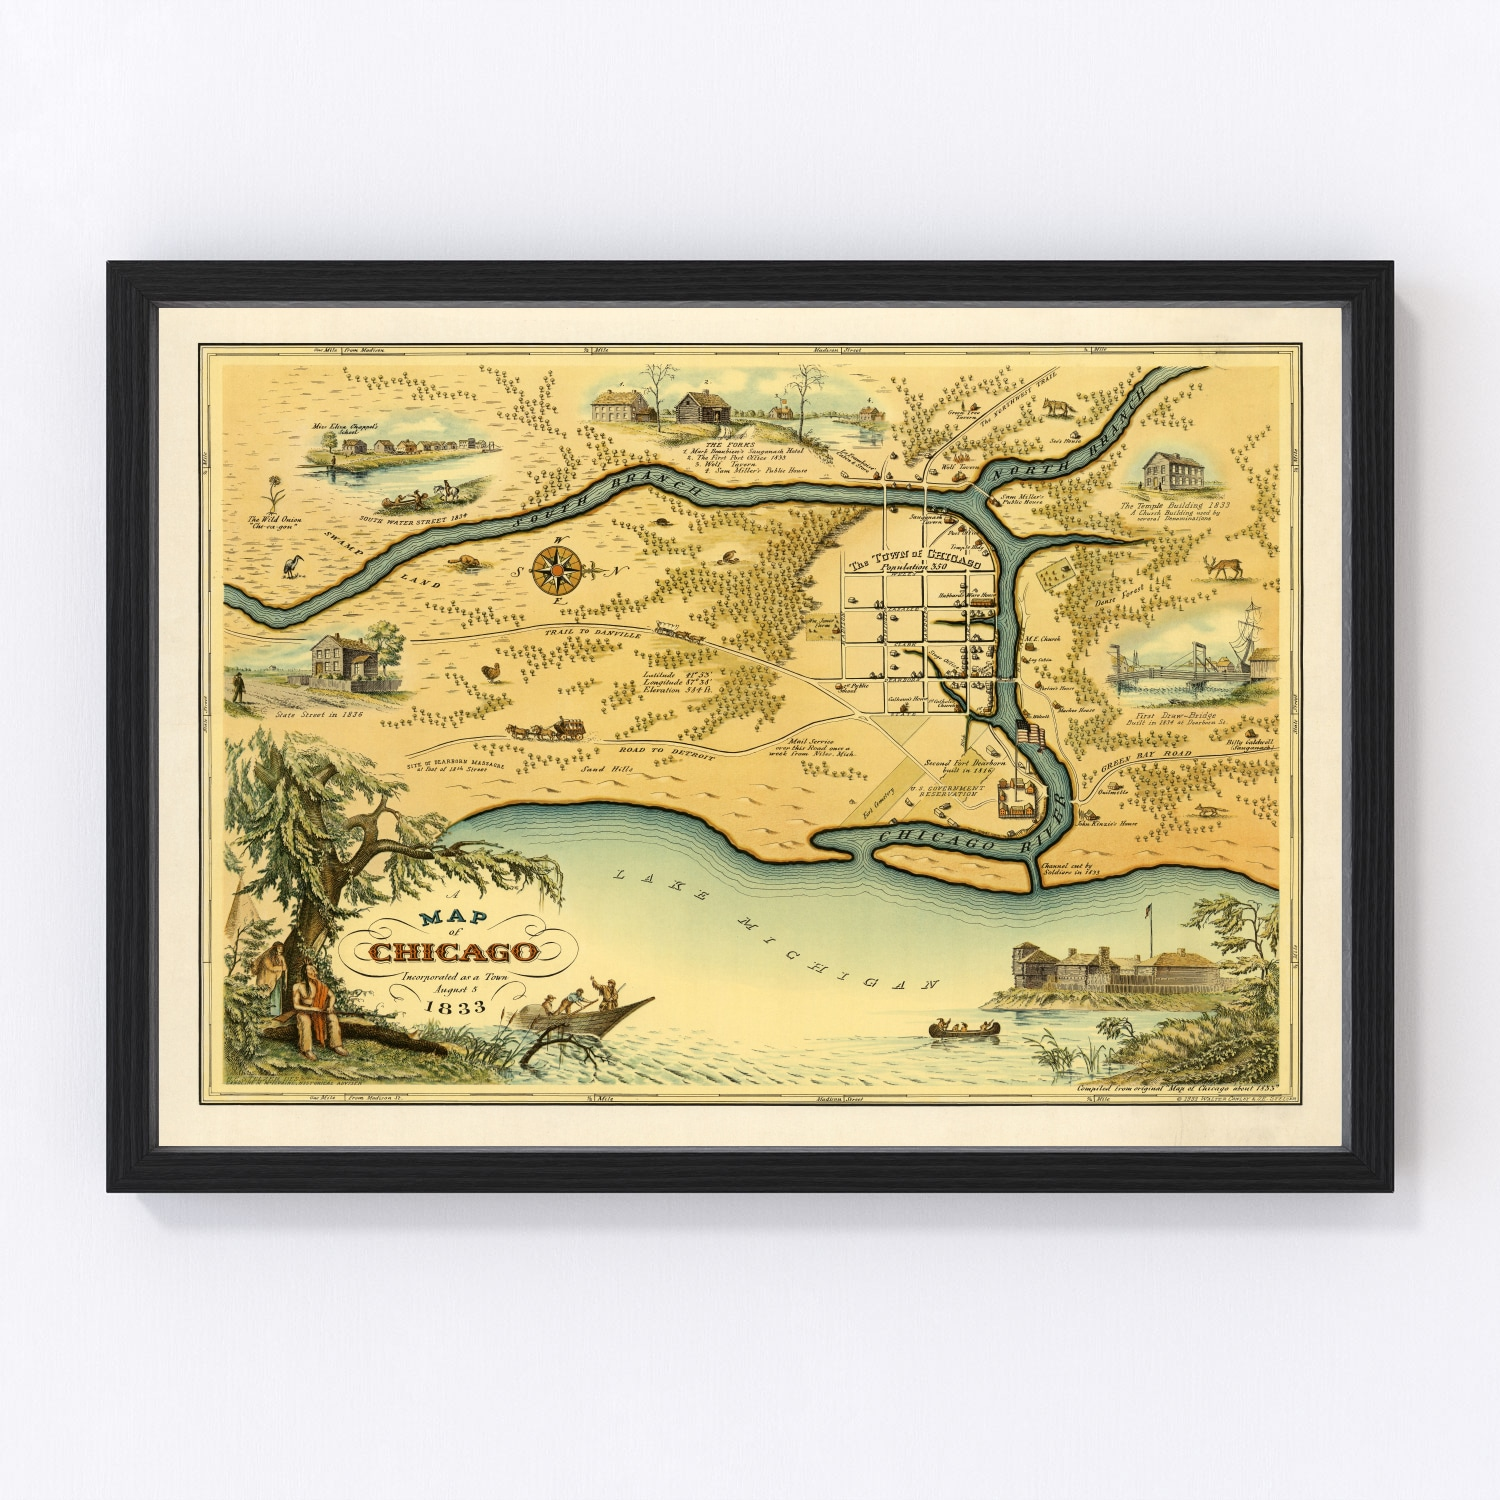 Vintage Map of Chicago, Illinois 1933